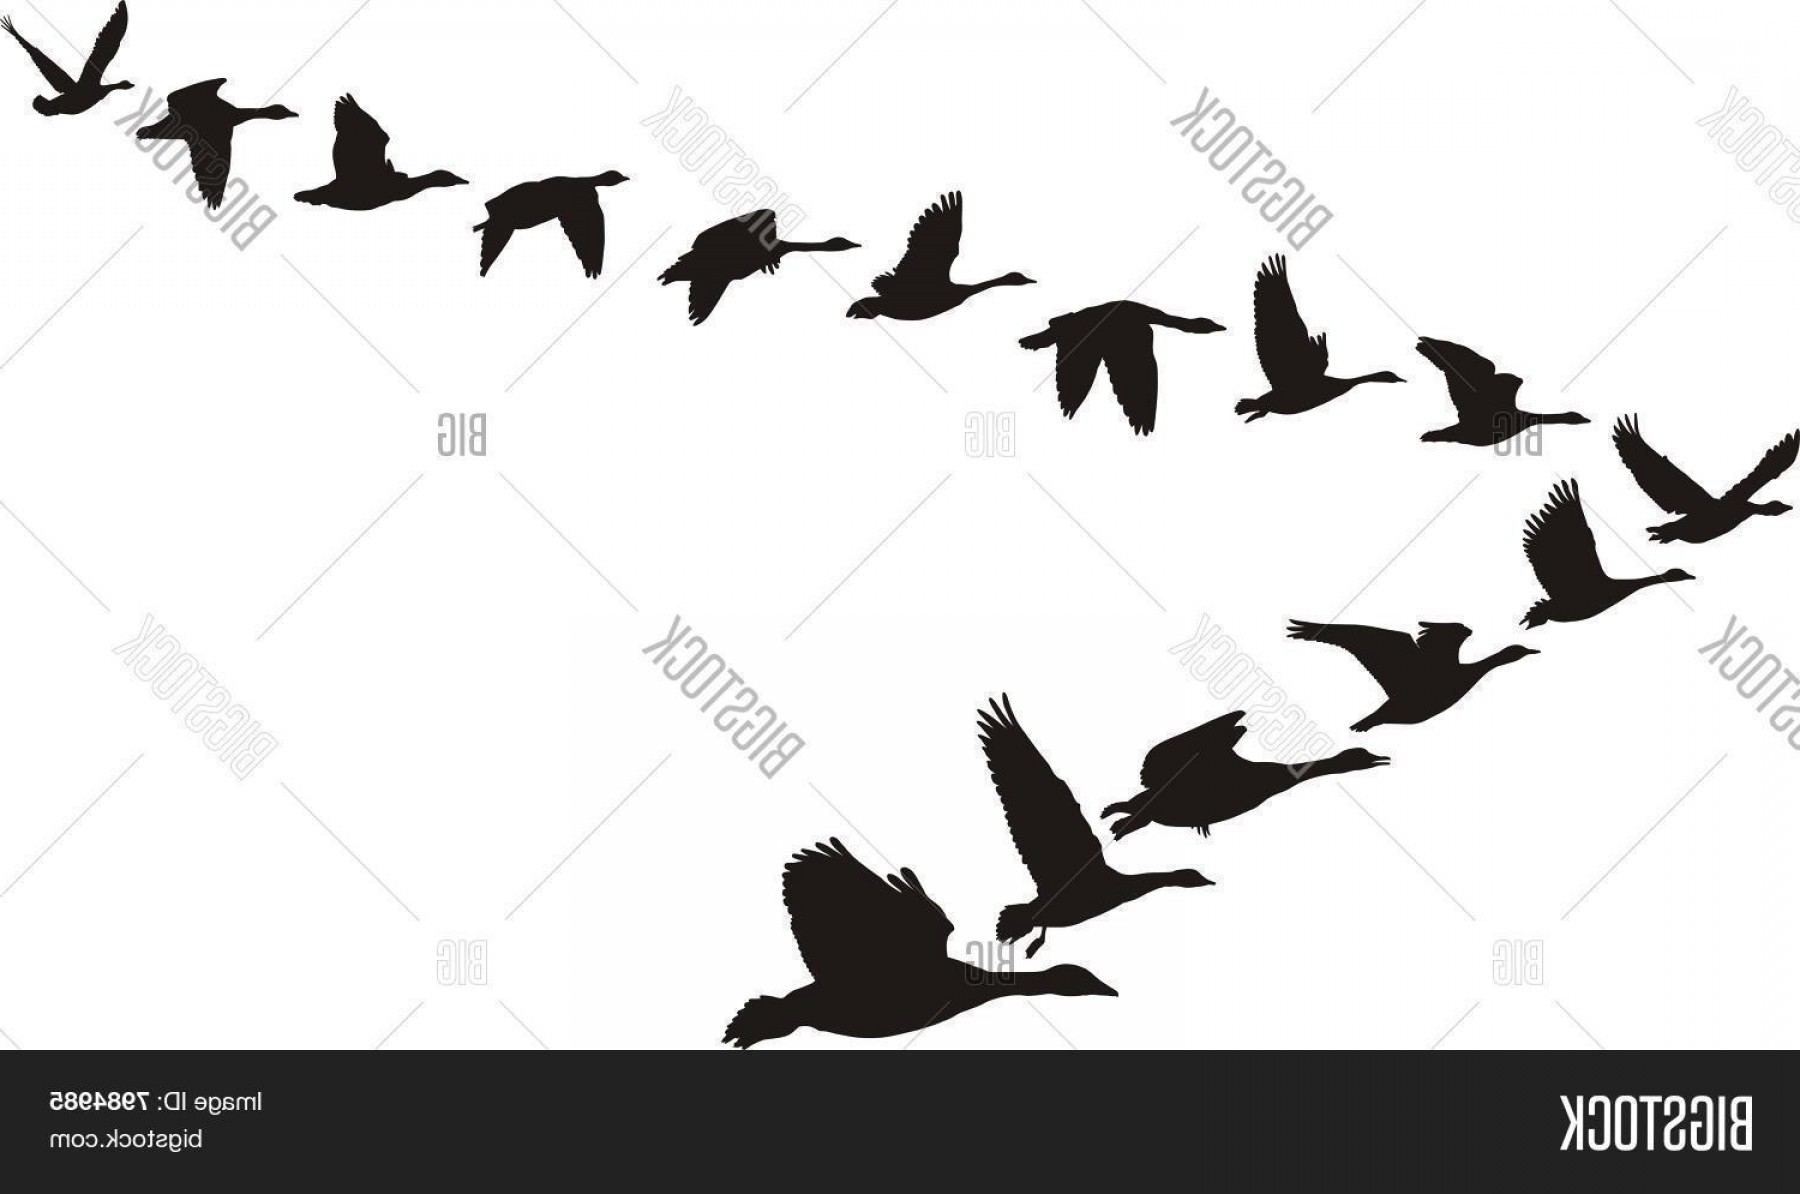 Geese Vector: Stock Vector Geese Flying In The Shape Of The Unit